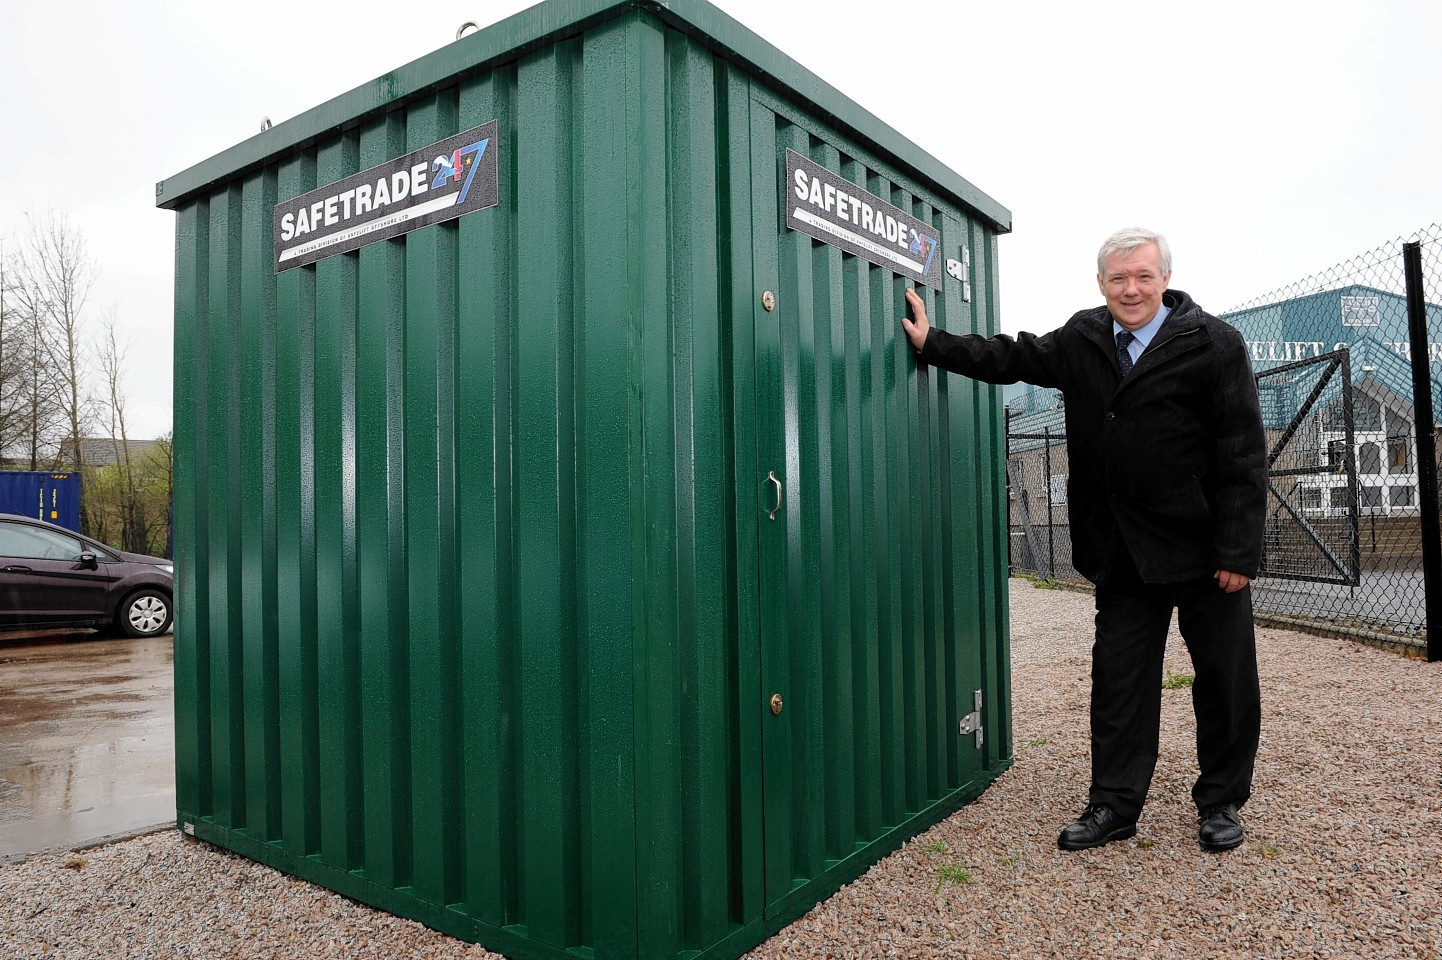 Bill Cheyne, Commercial Development Manager of SafeTrade 247, who are donating a high tech security storage unit to CLAN in Ballater after thieves broke into the charity shop's storage shed and threw their stock into the River Dee.